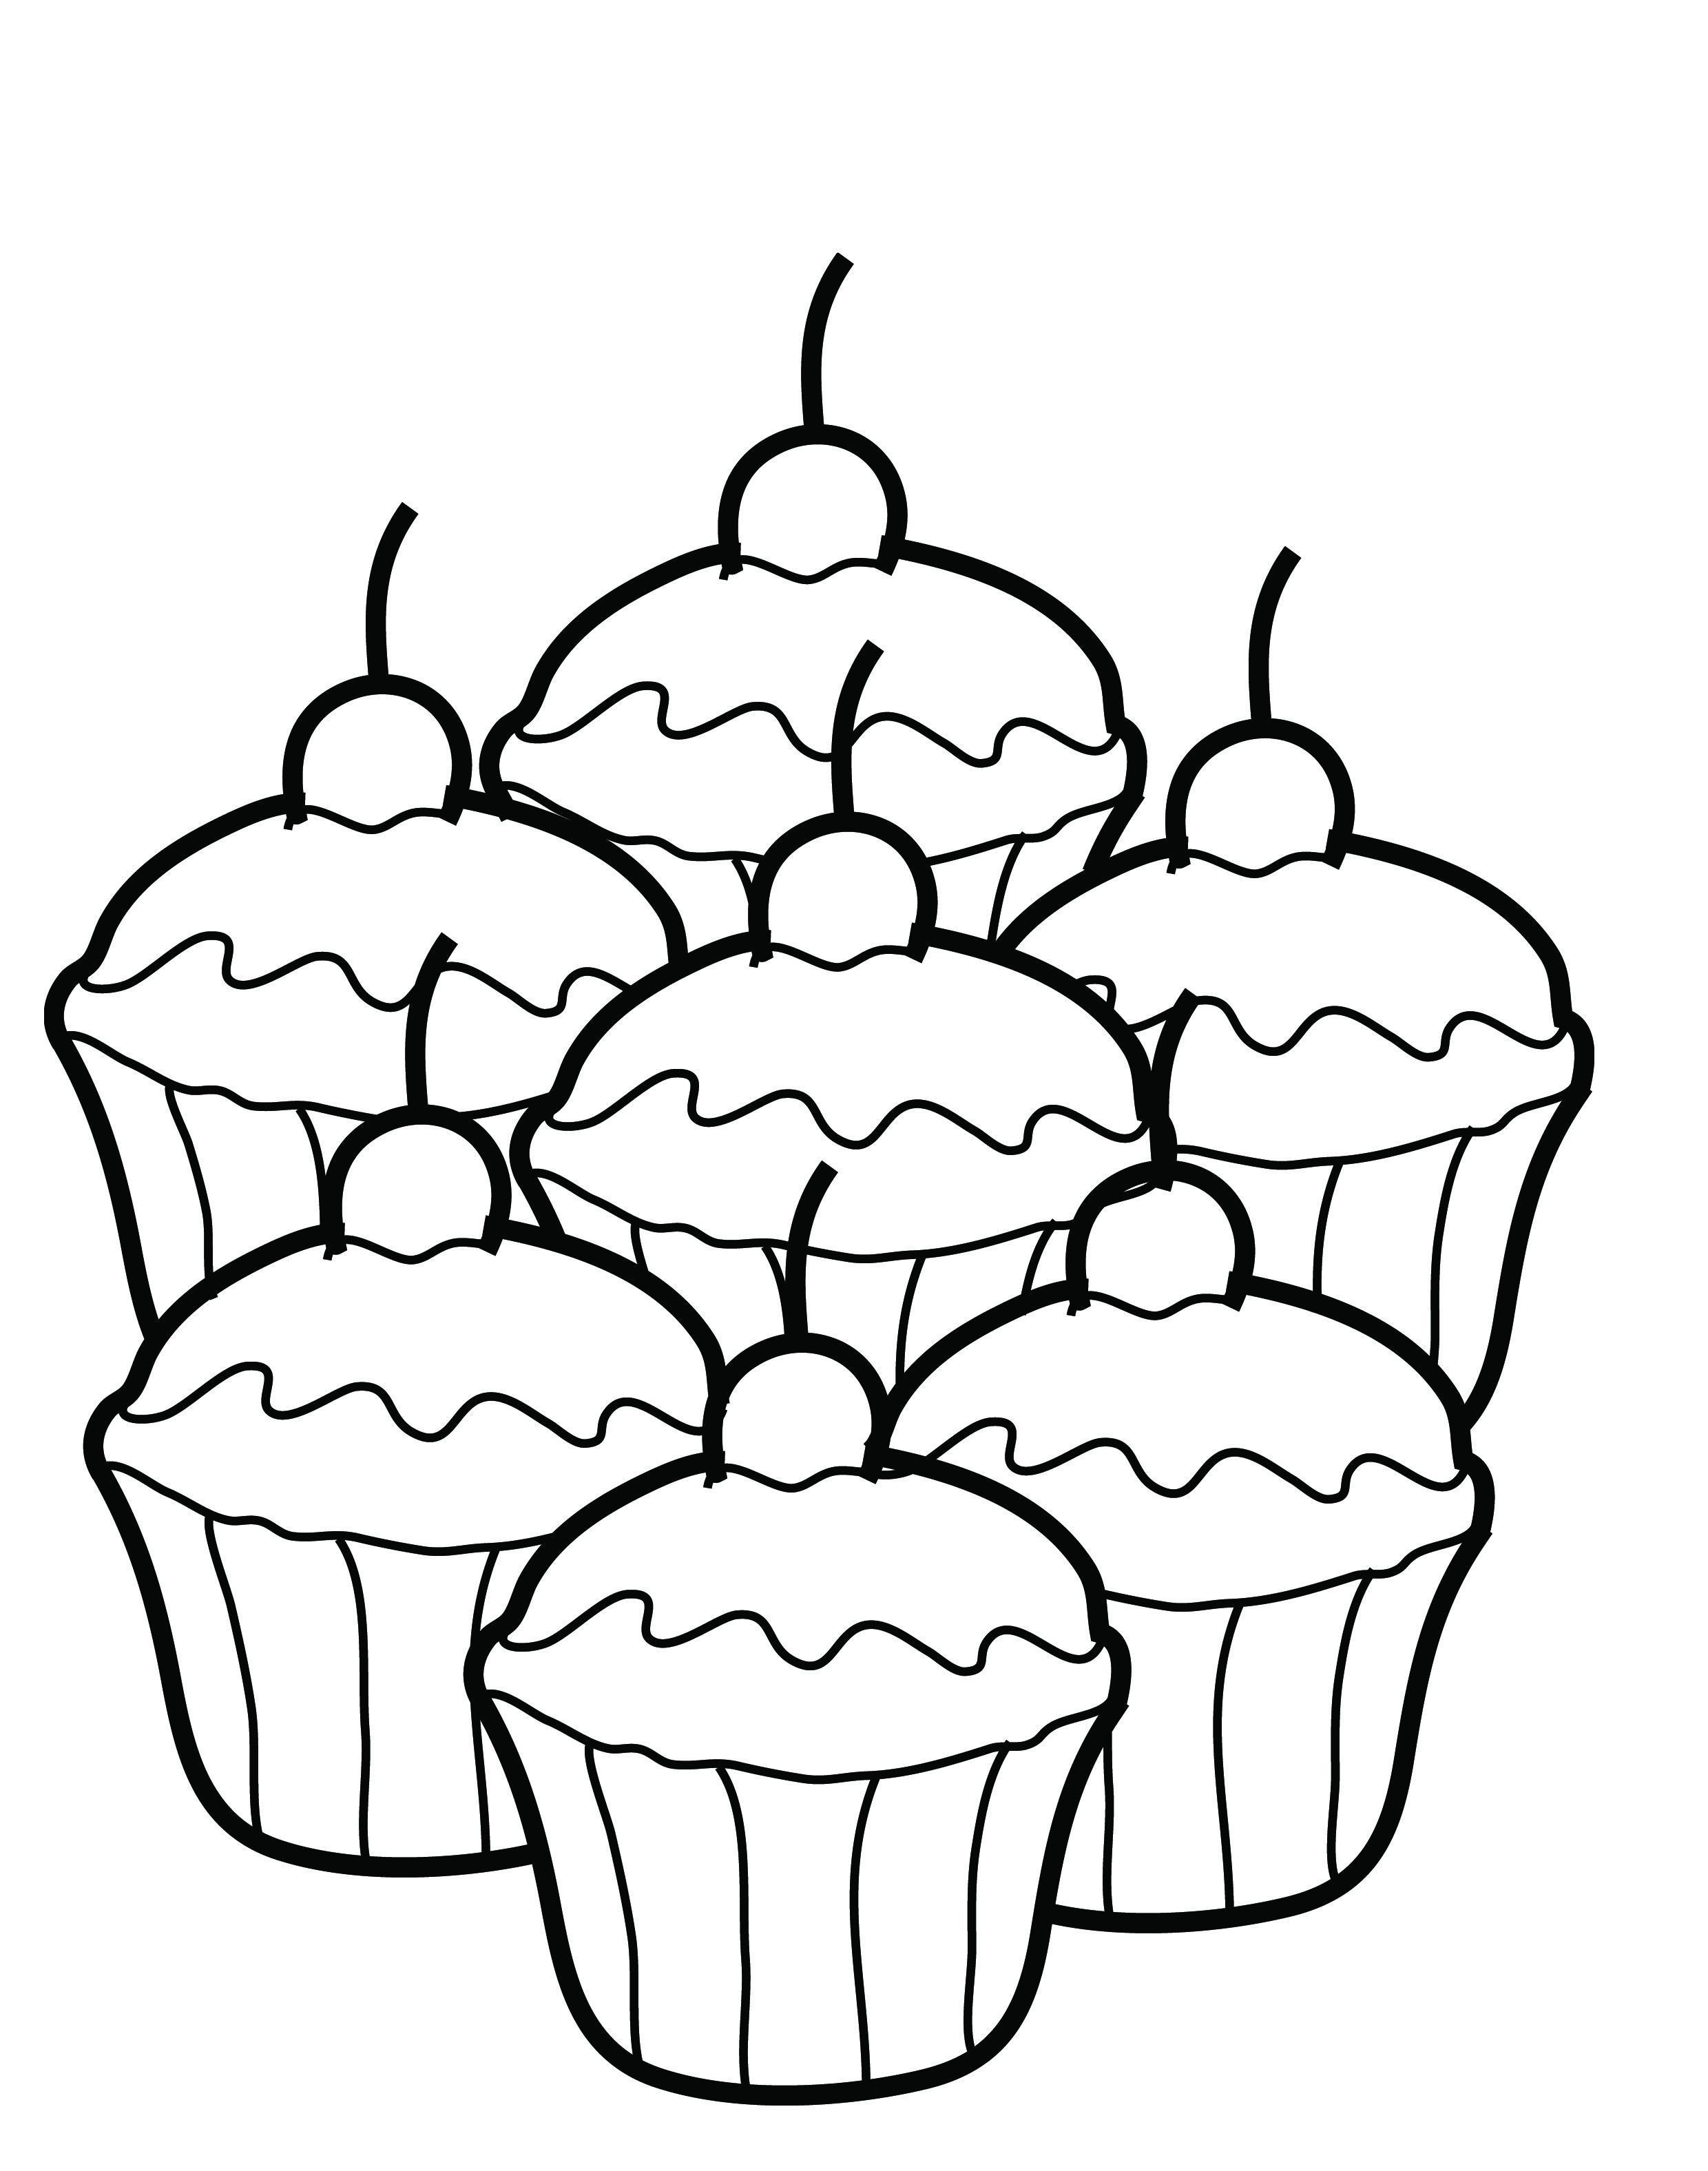 cupcake coloring pages for kids - Couloring Sheets